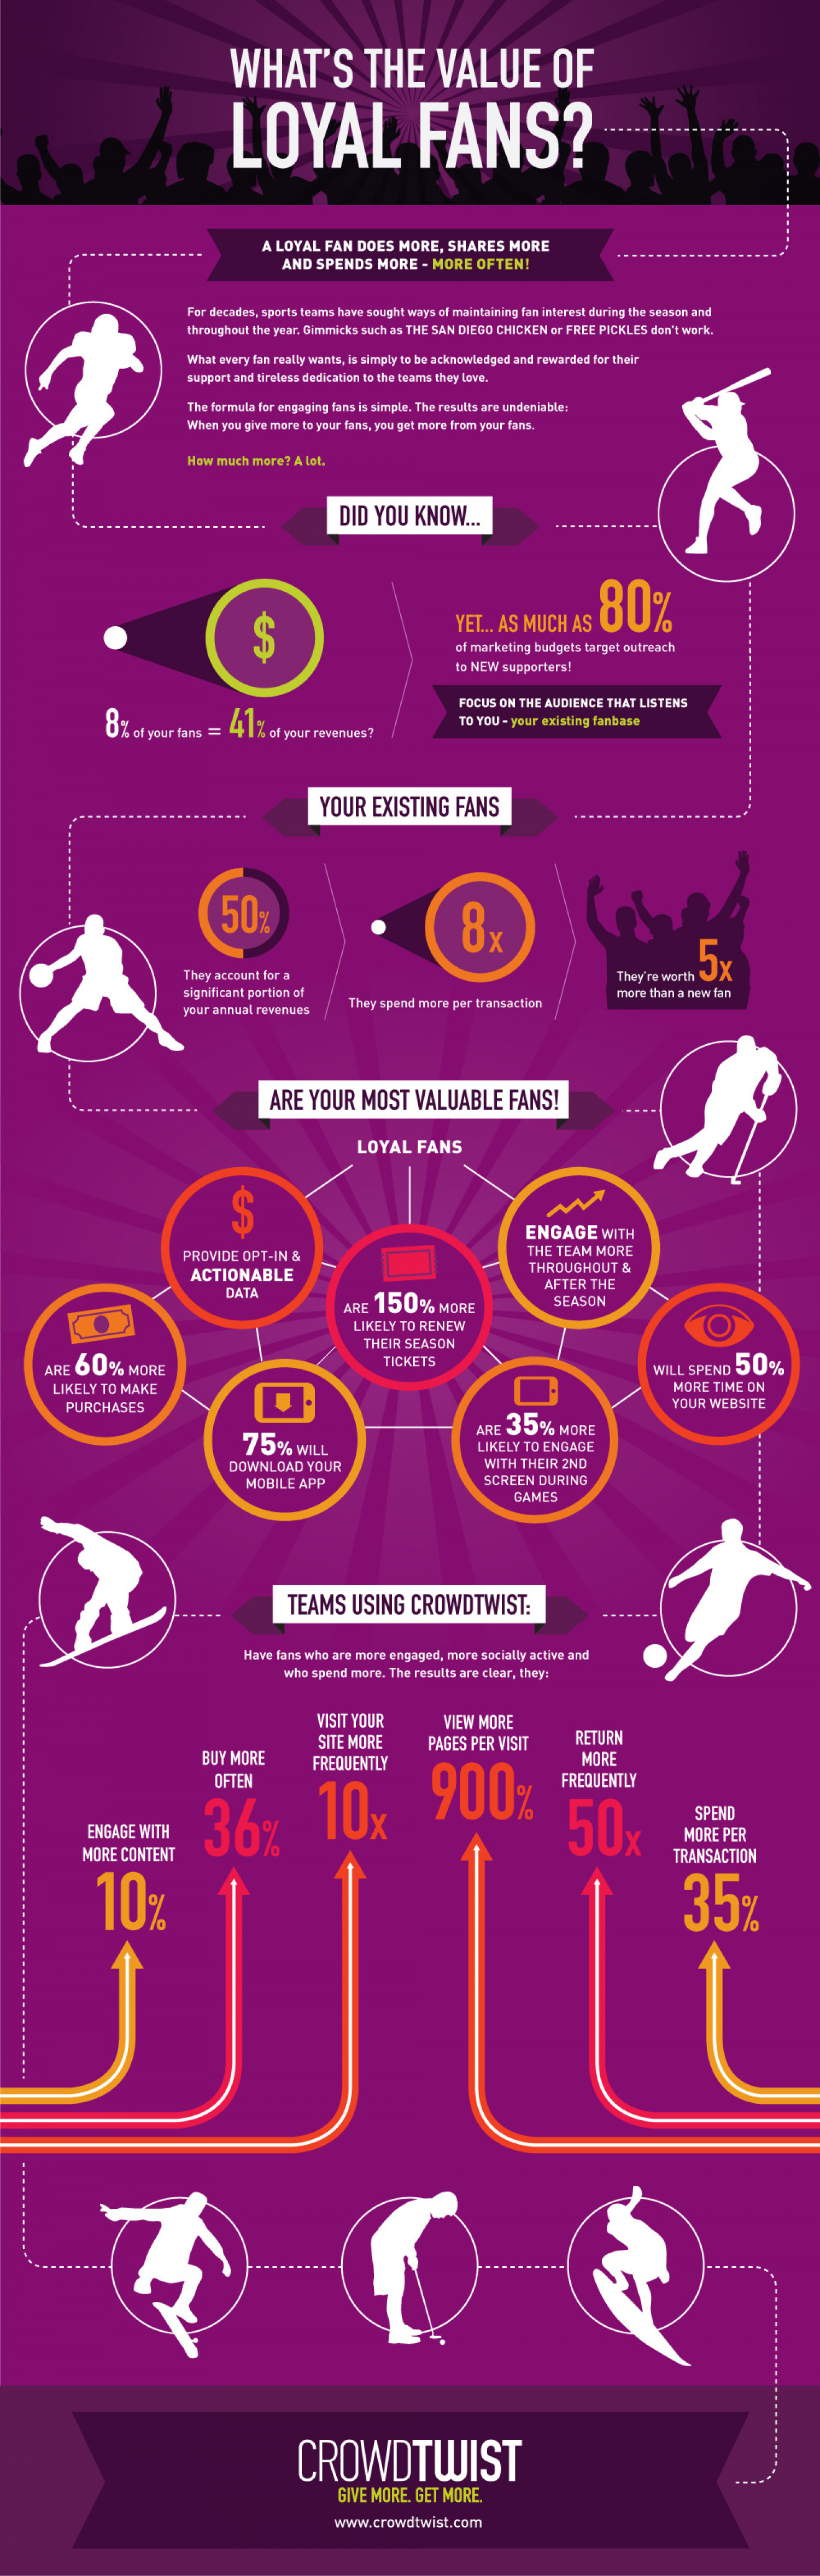 What's the Value of Loyal Fans? Infographic